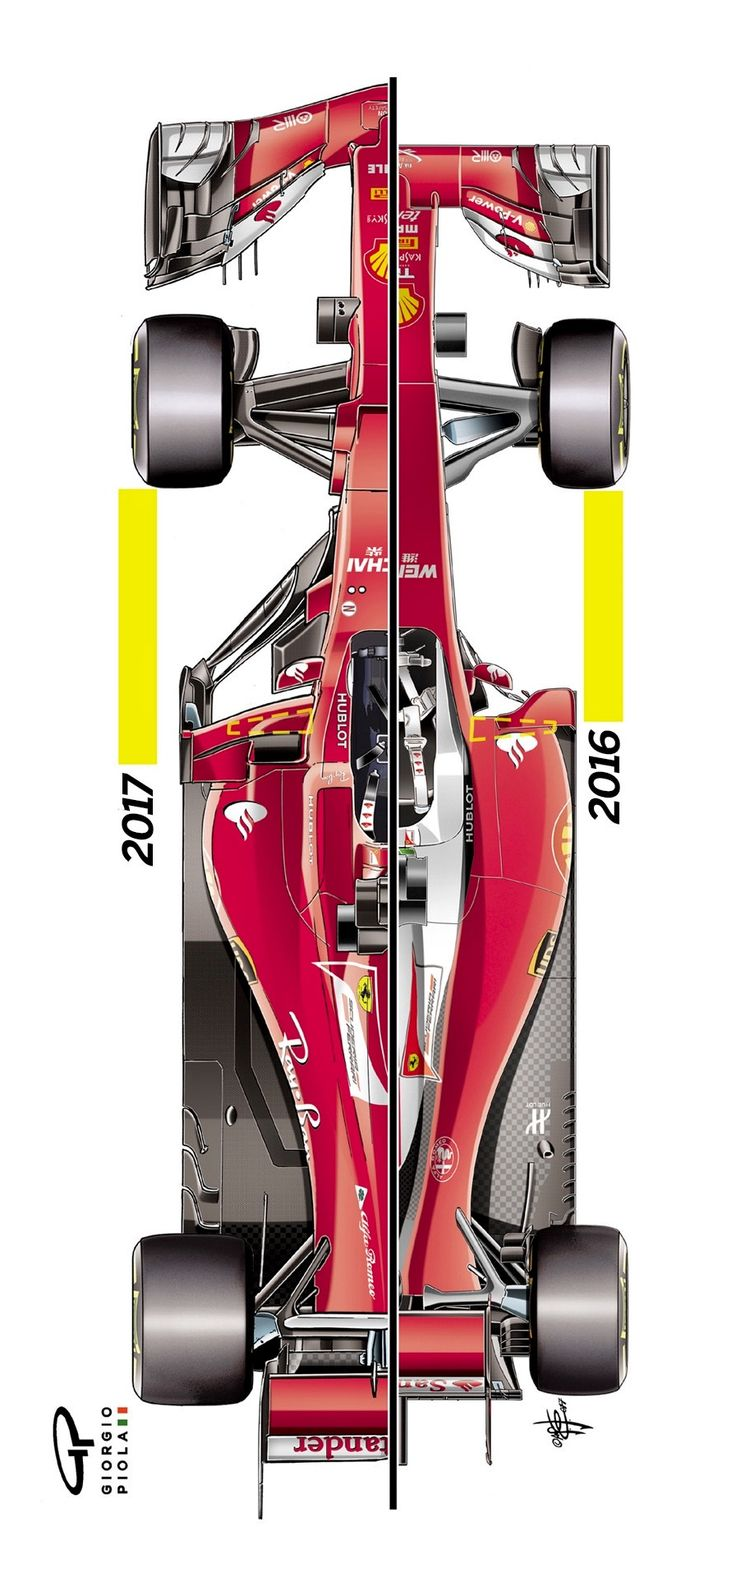 Ferrari's SF70H boasts a feature quite revolutionary in terms of how it interprets the regulations regarding the car's mandatory side impact structures - and it has significant performance implications too...